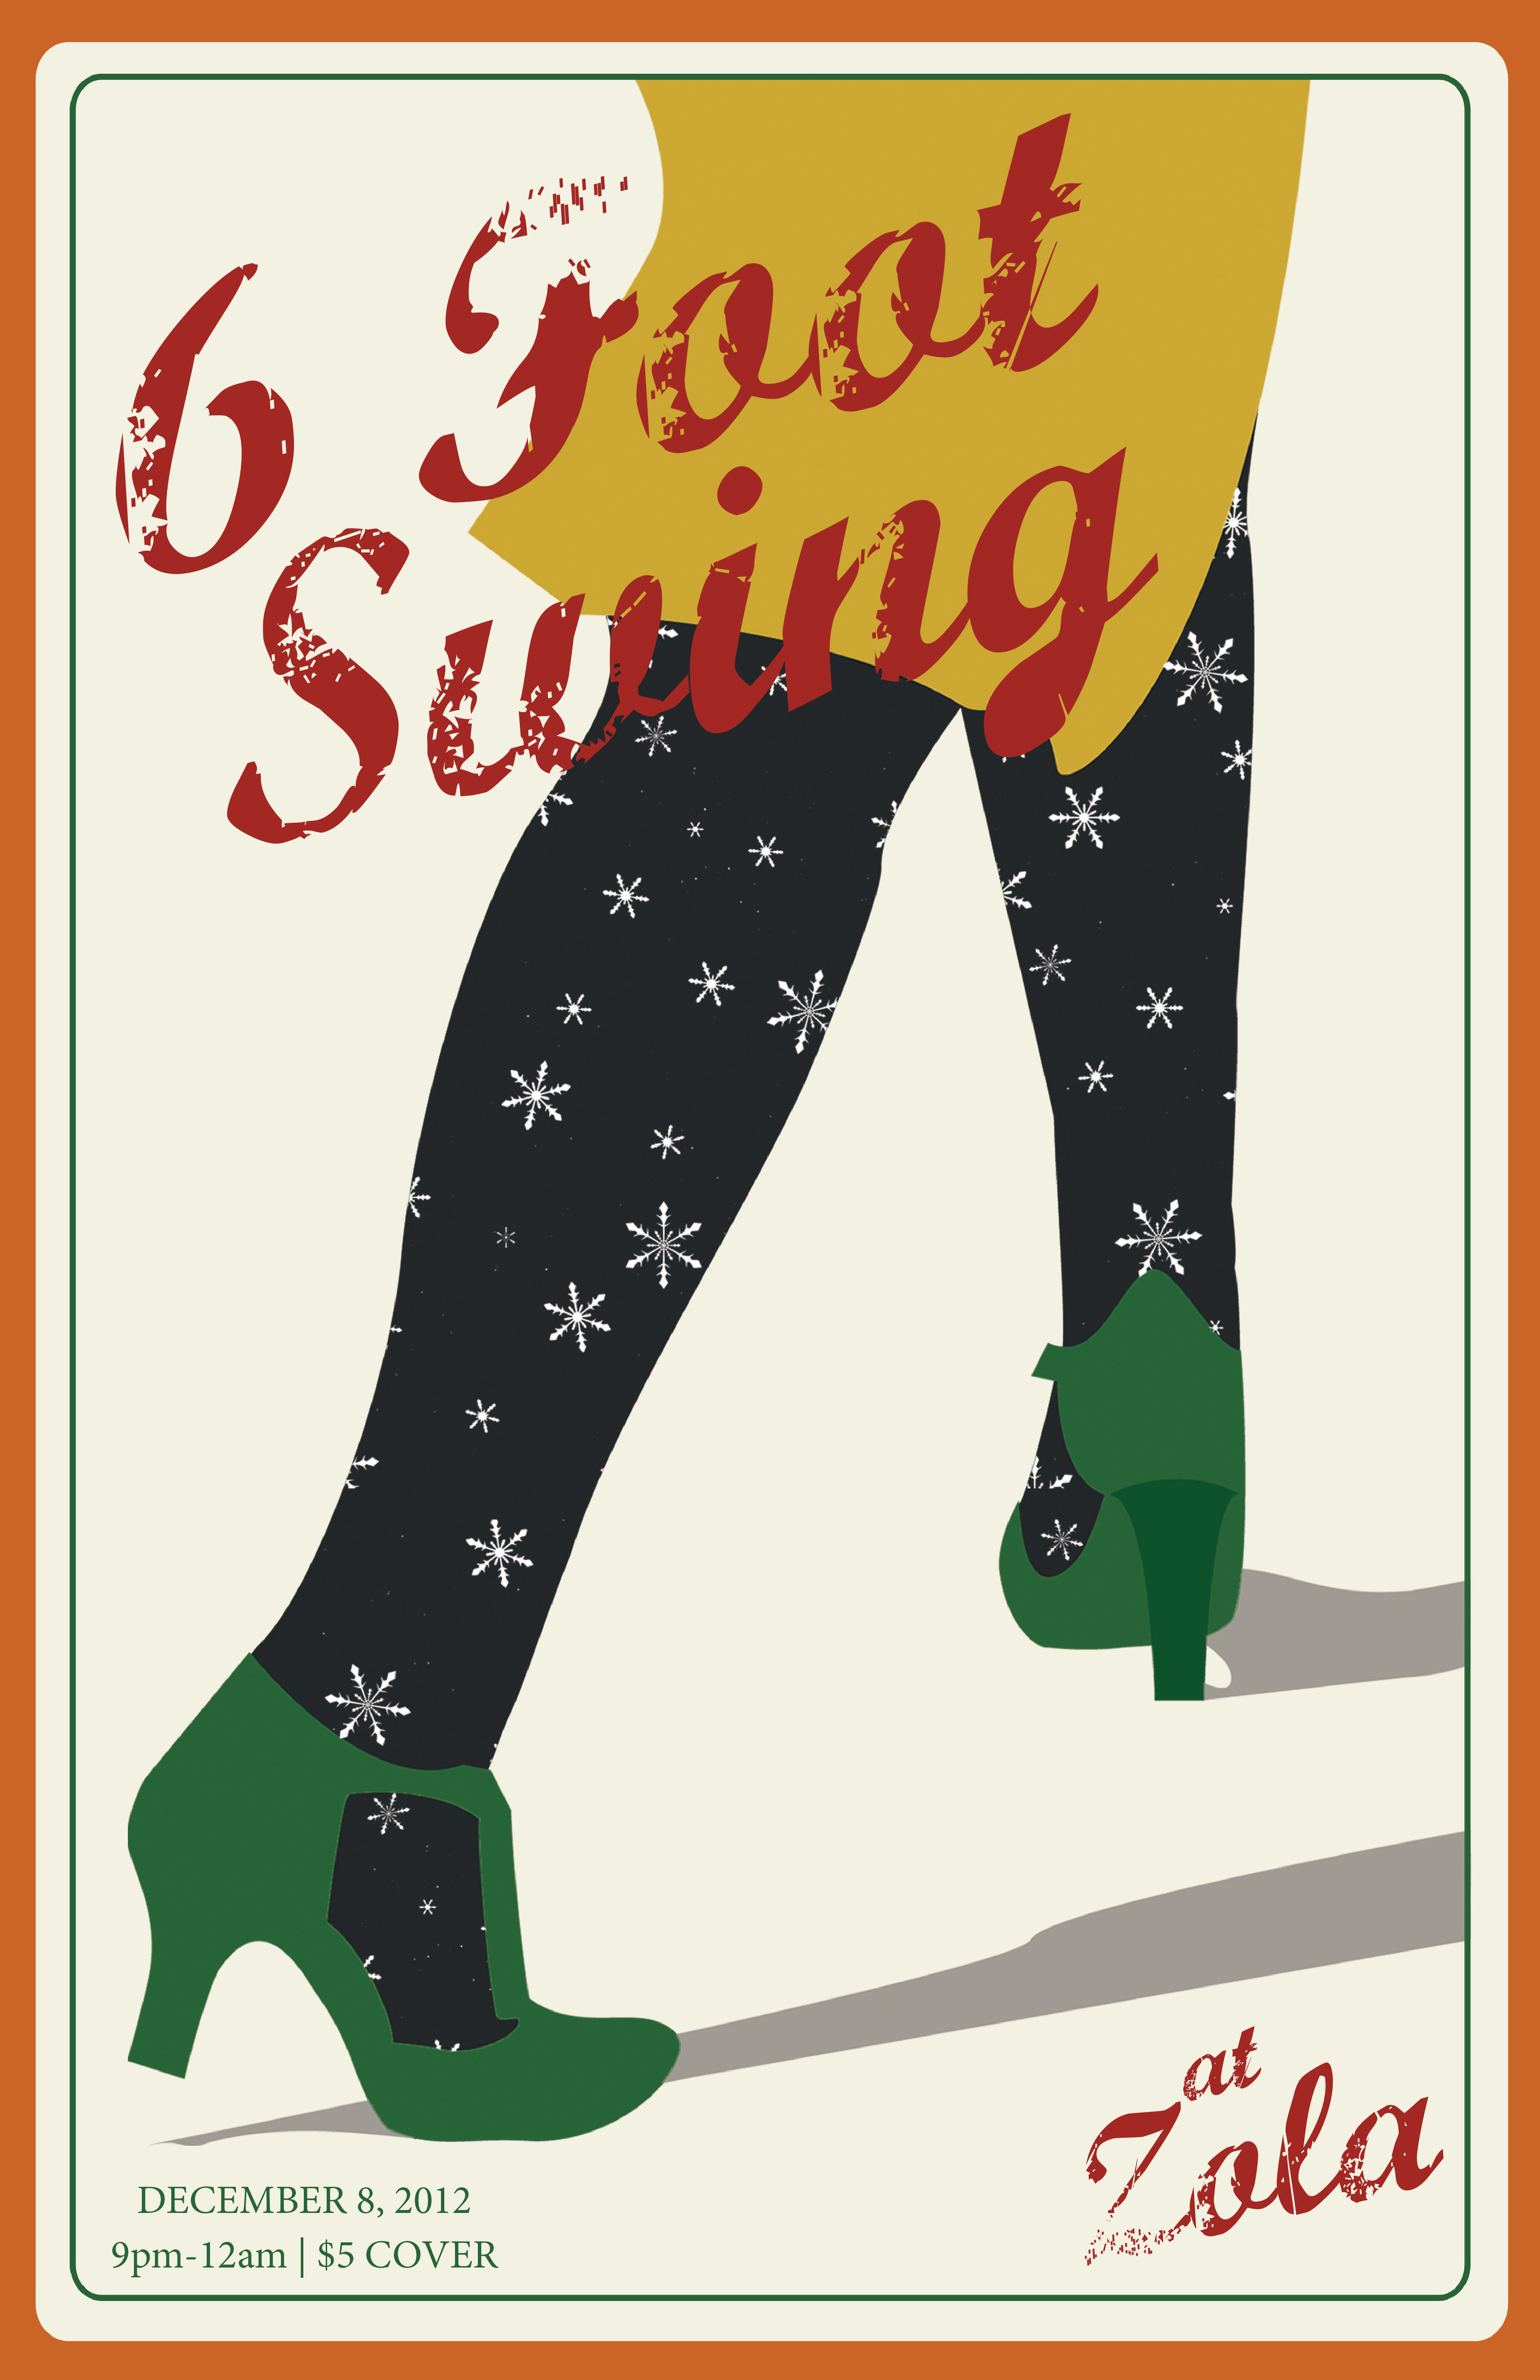 6 Foot Swing gig poster